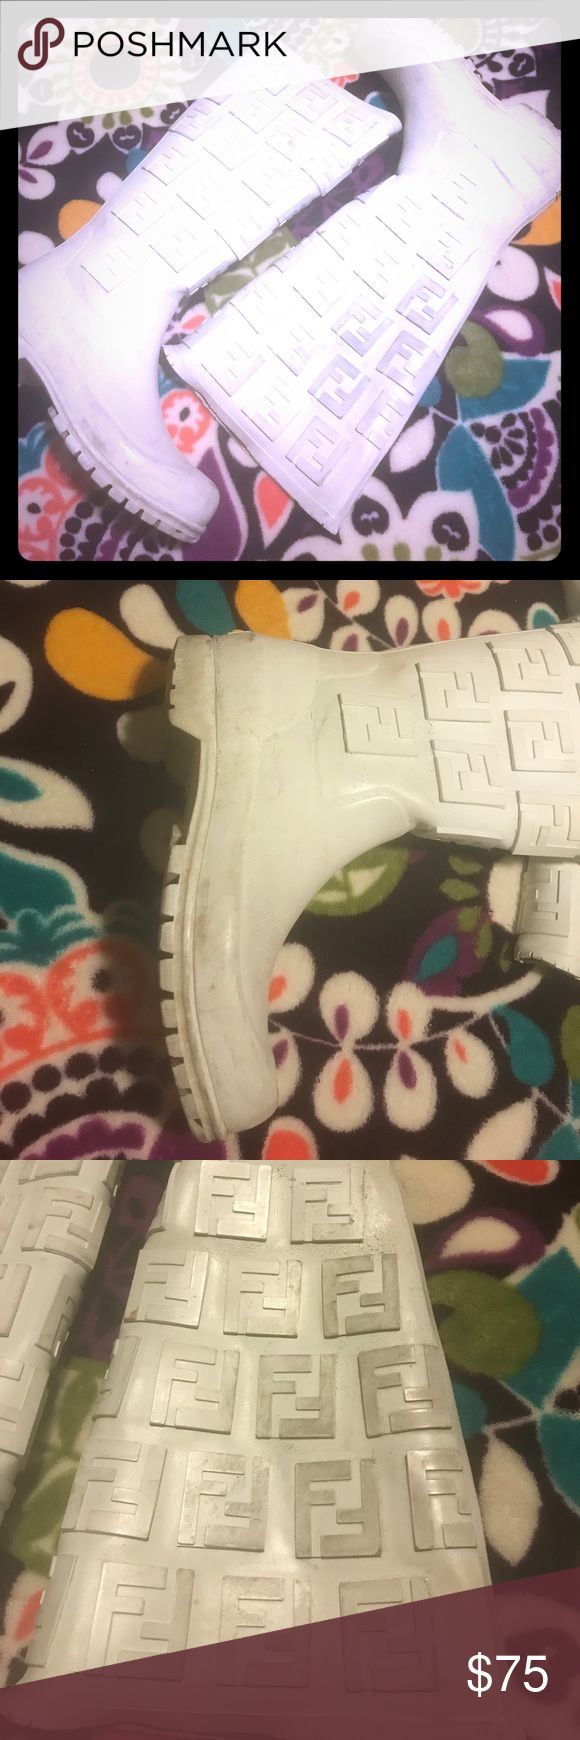 Fendi Rainboots White rain boots, loved and weathered the rain! ☔️ Says size 36 BUT fits a size 7 or 7.5. Comfortable with thick socks. Fendi Shoes Winter & Rain Boots